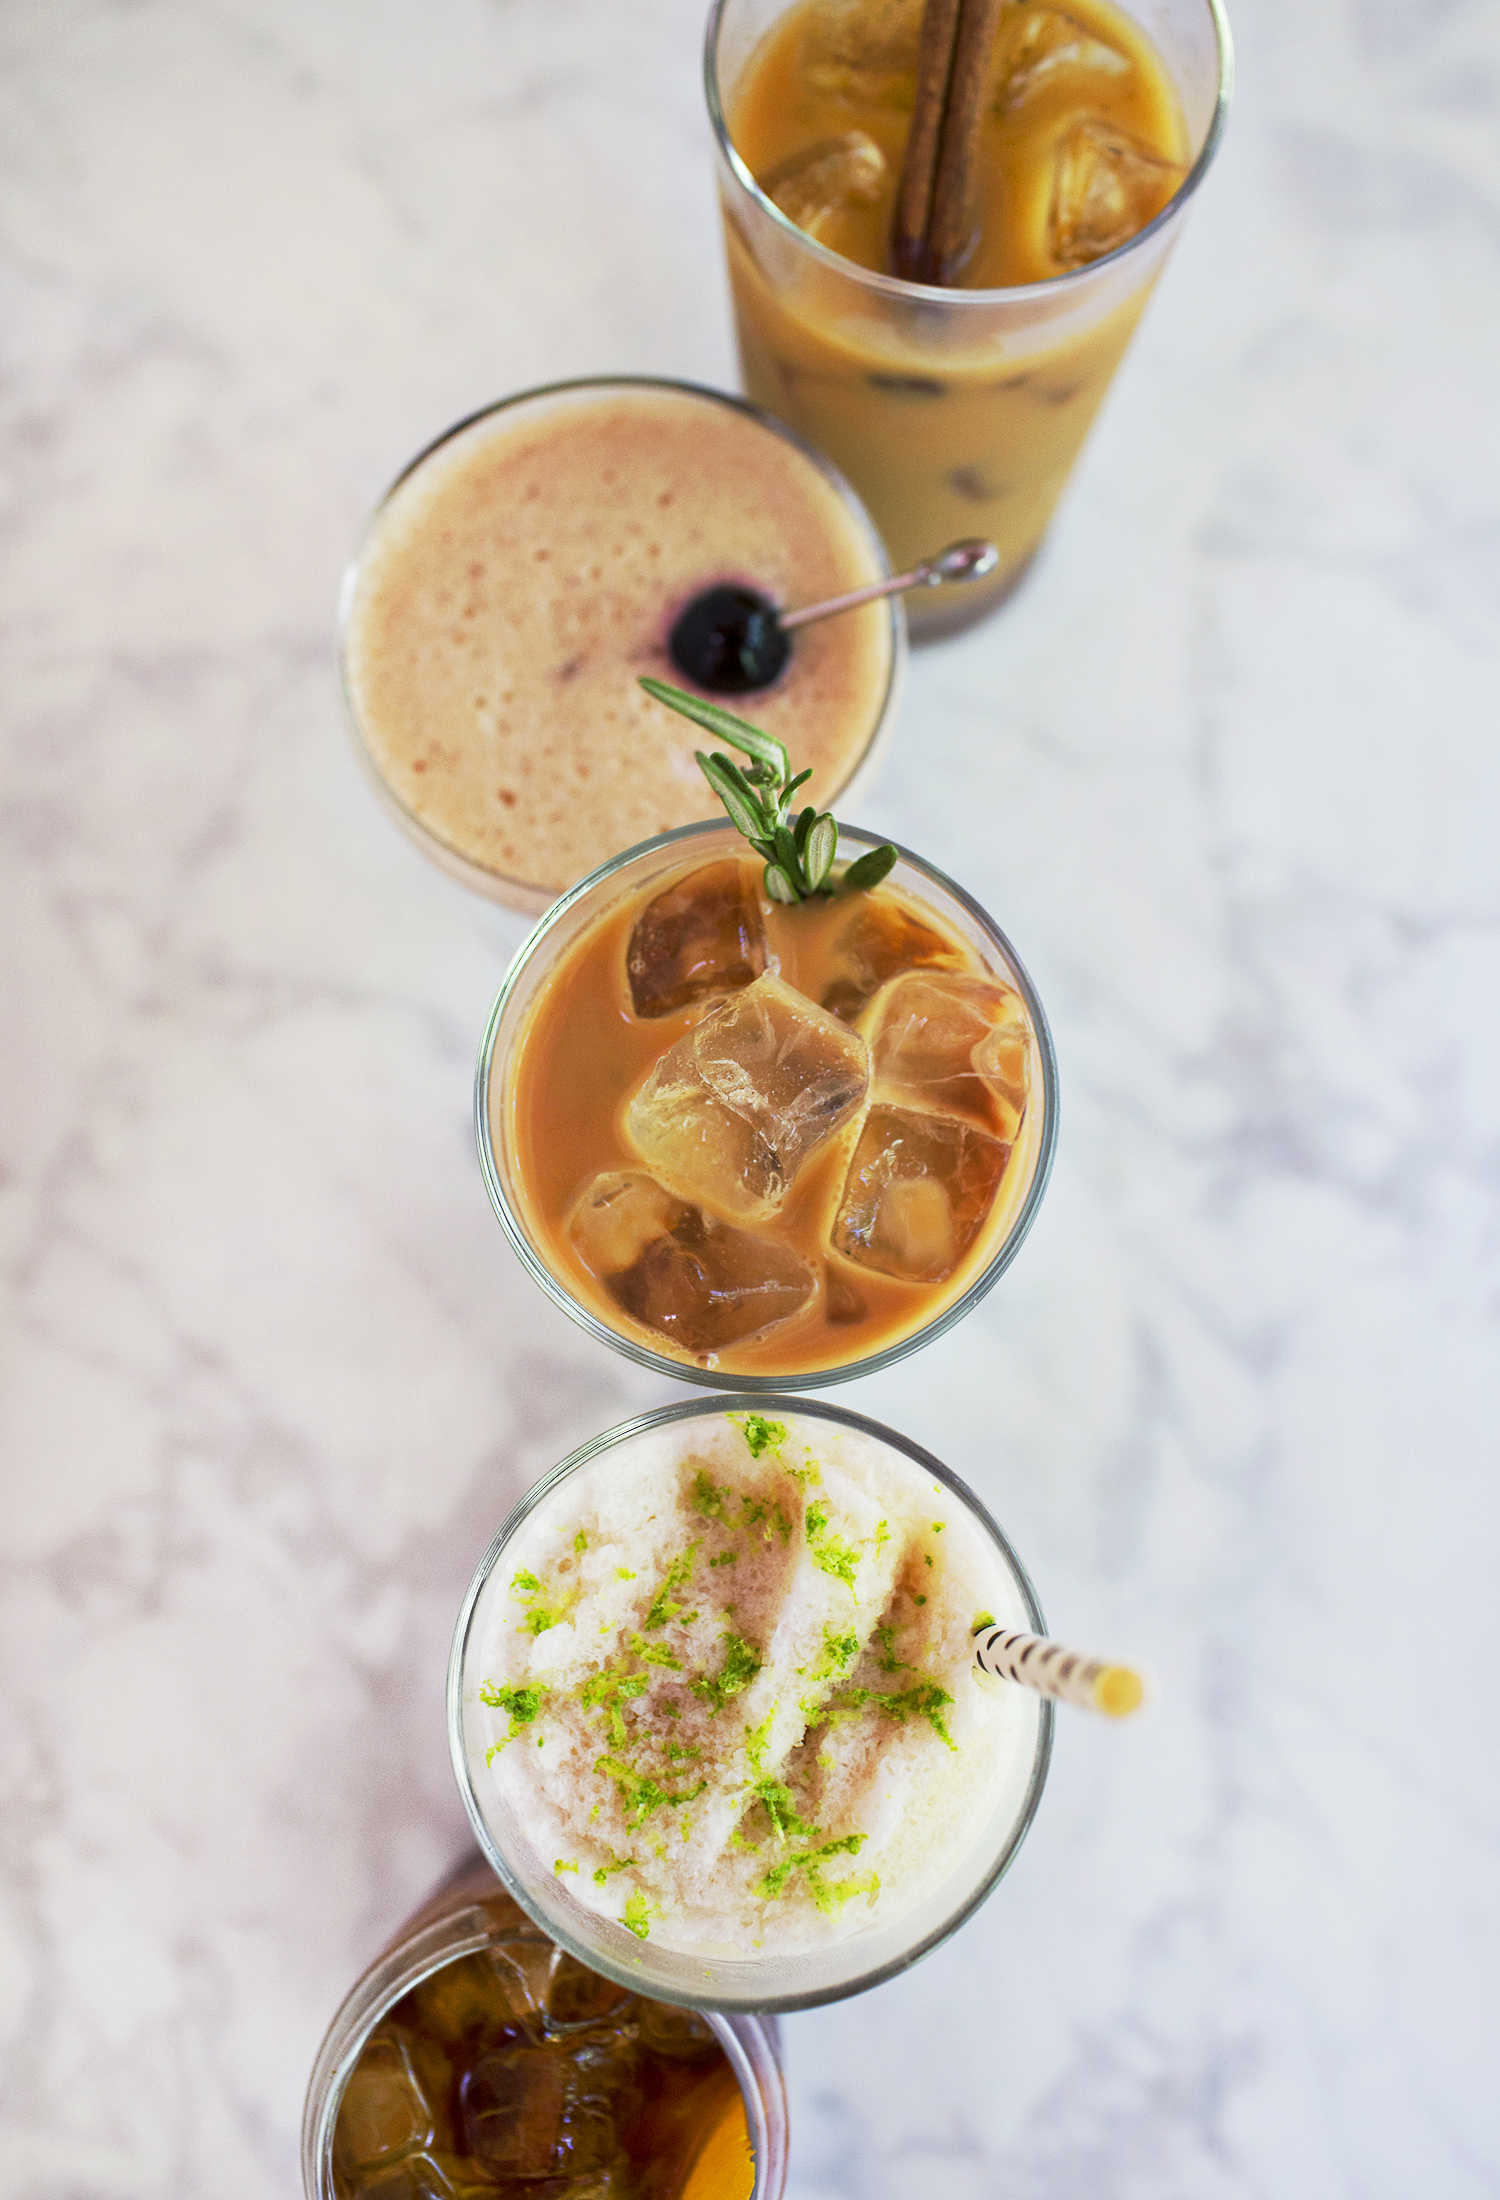 5 Simple Iced Coffee recipies